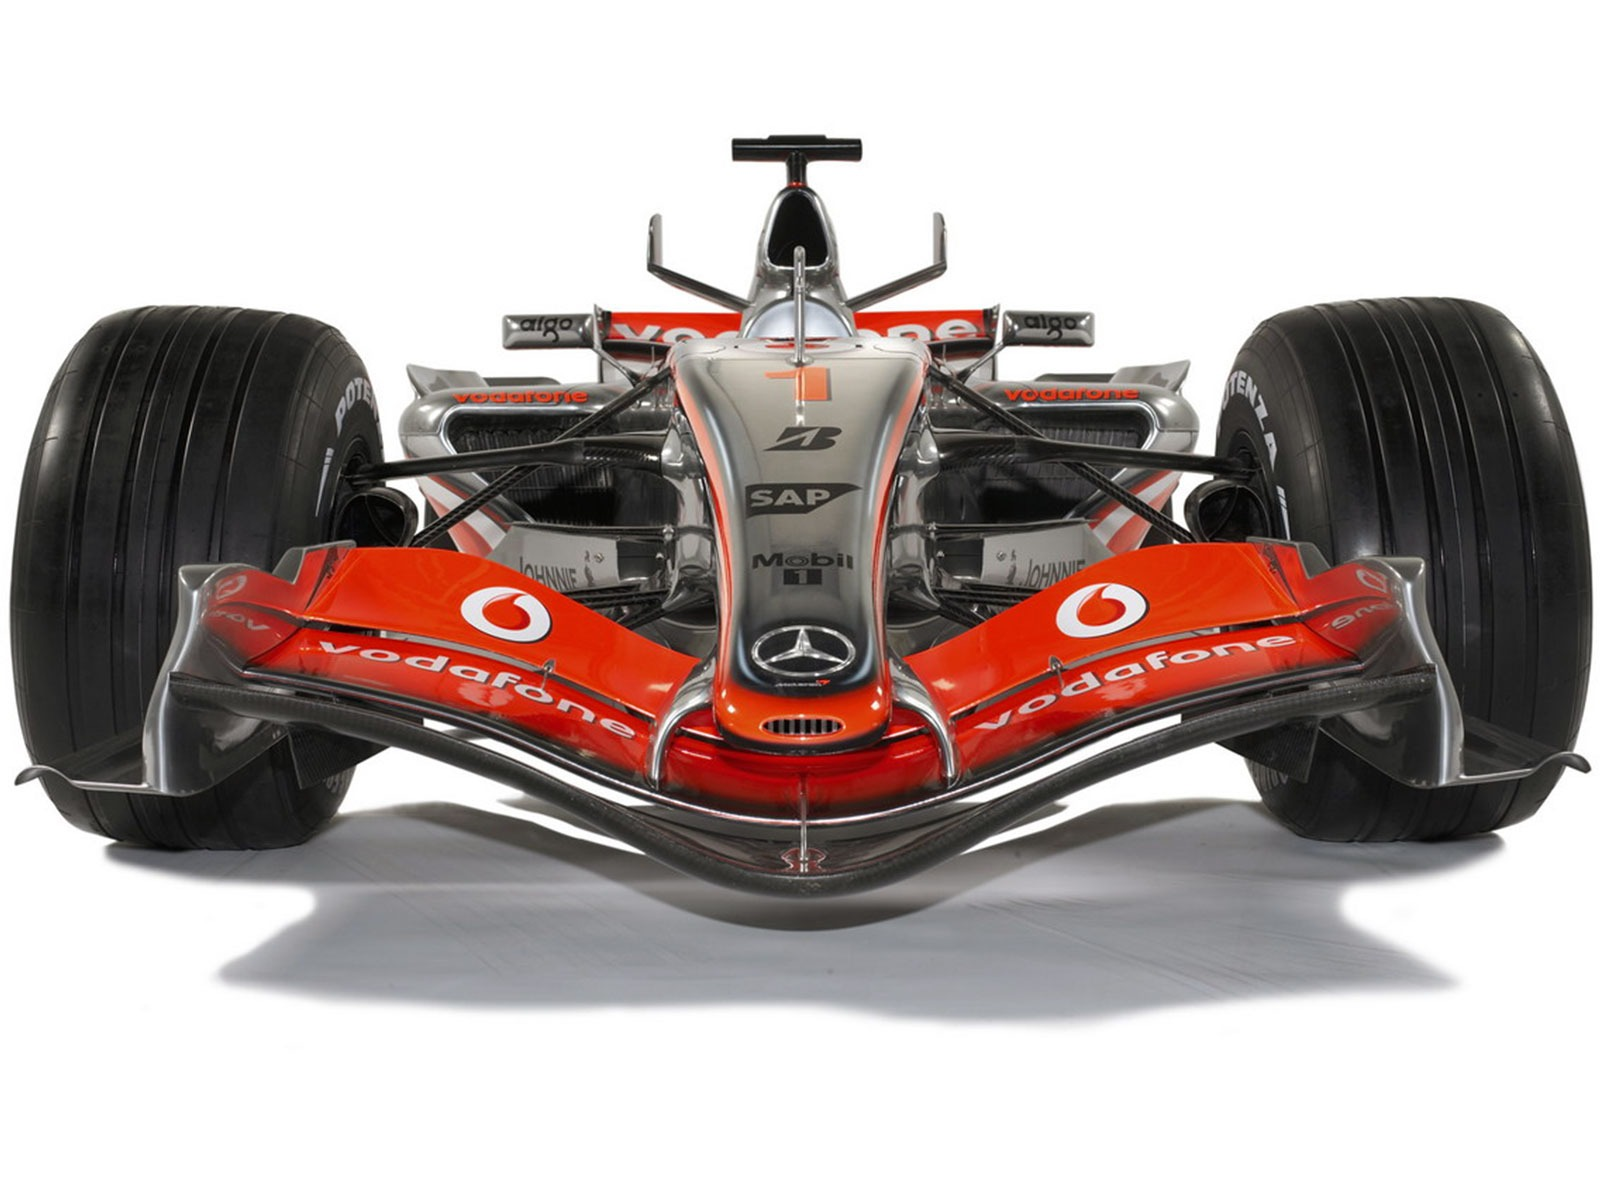 F1 wallpapers 4